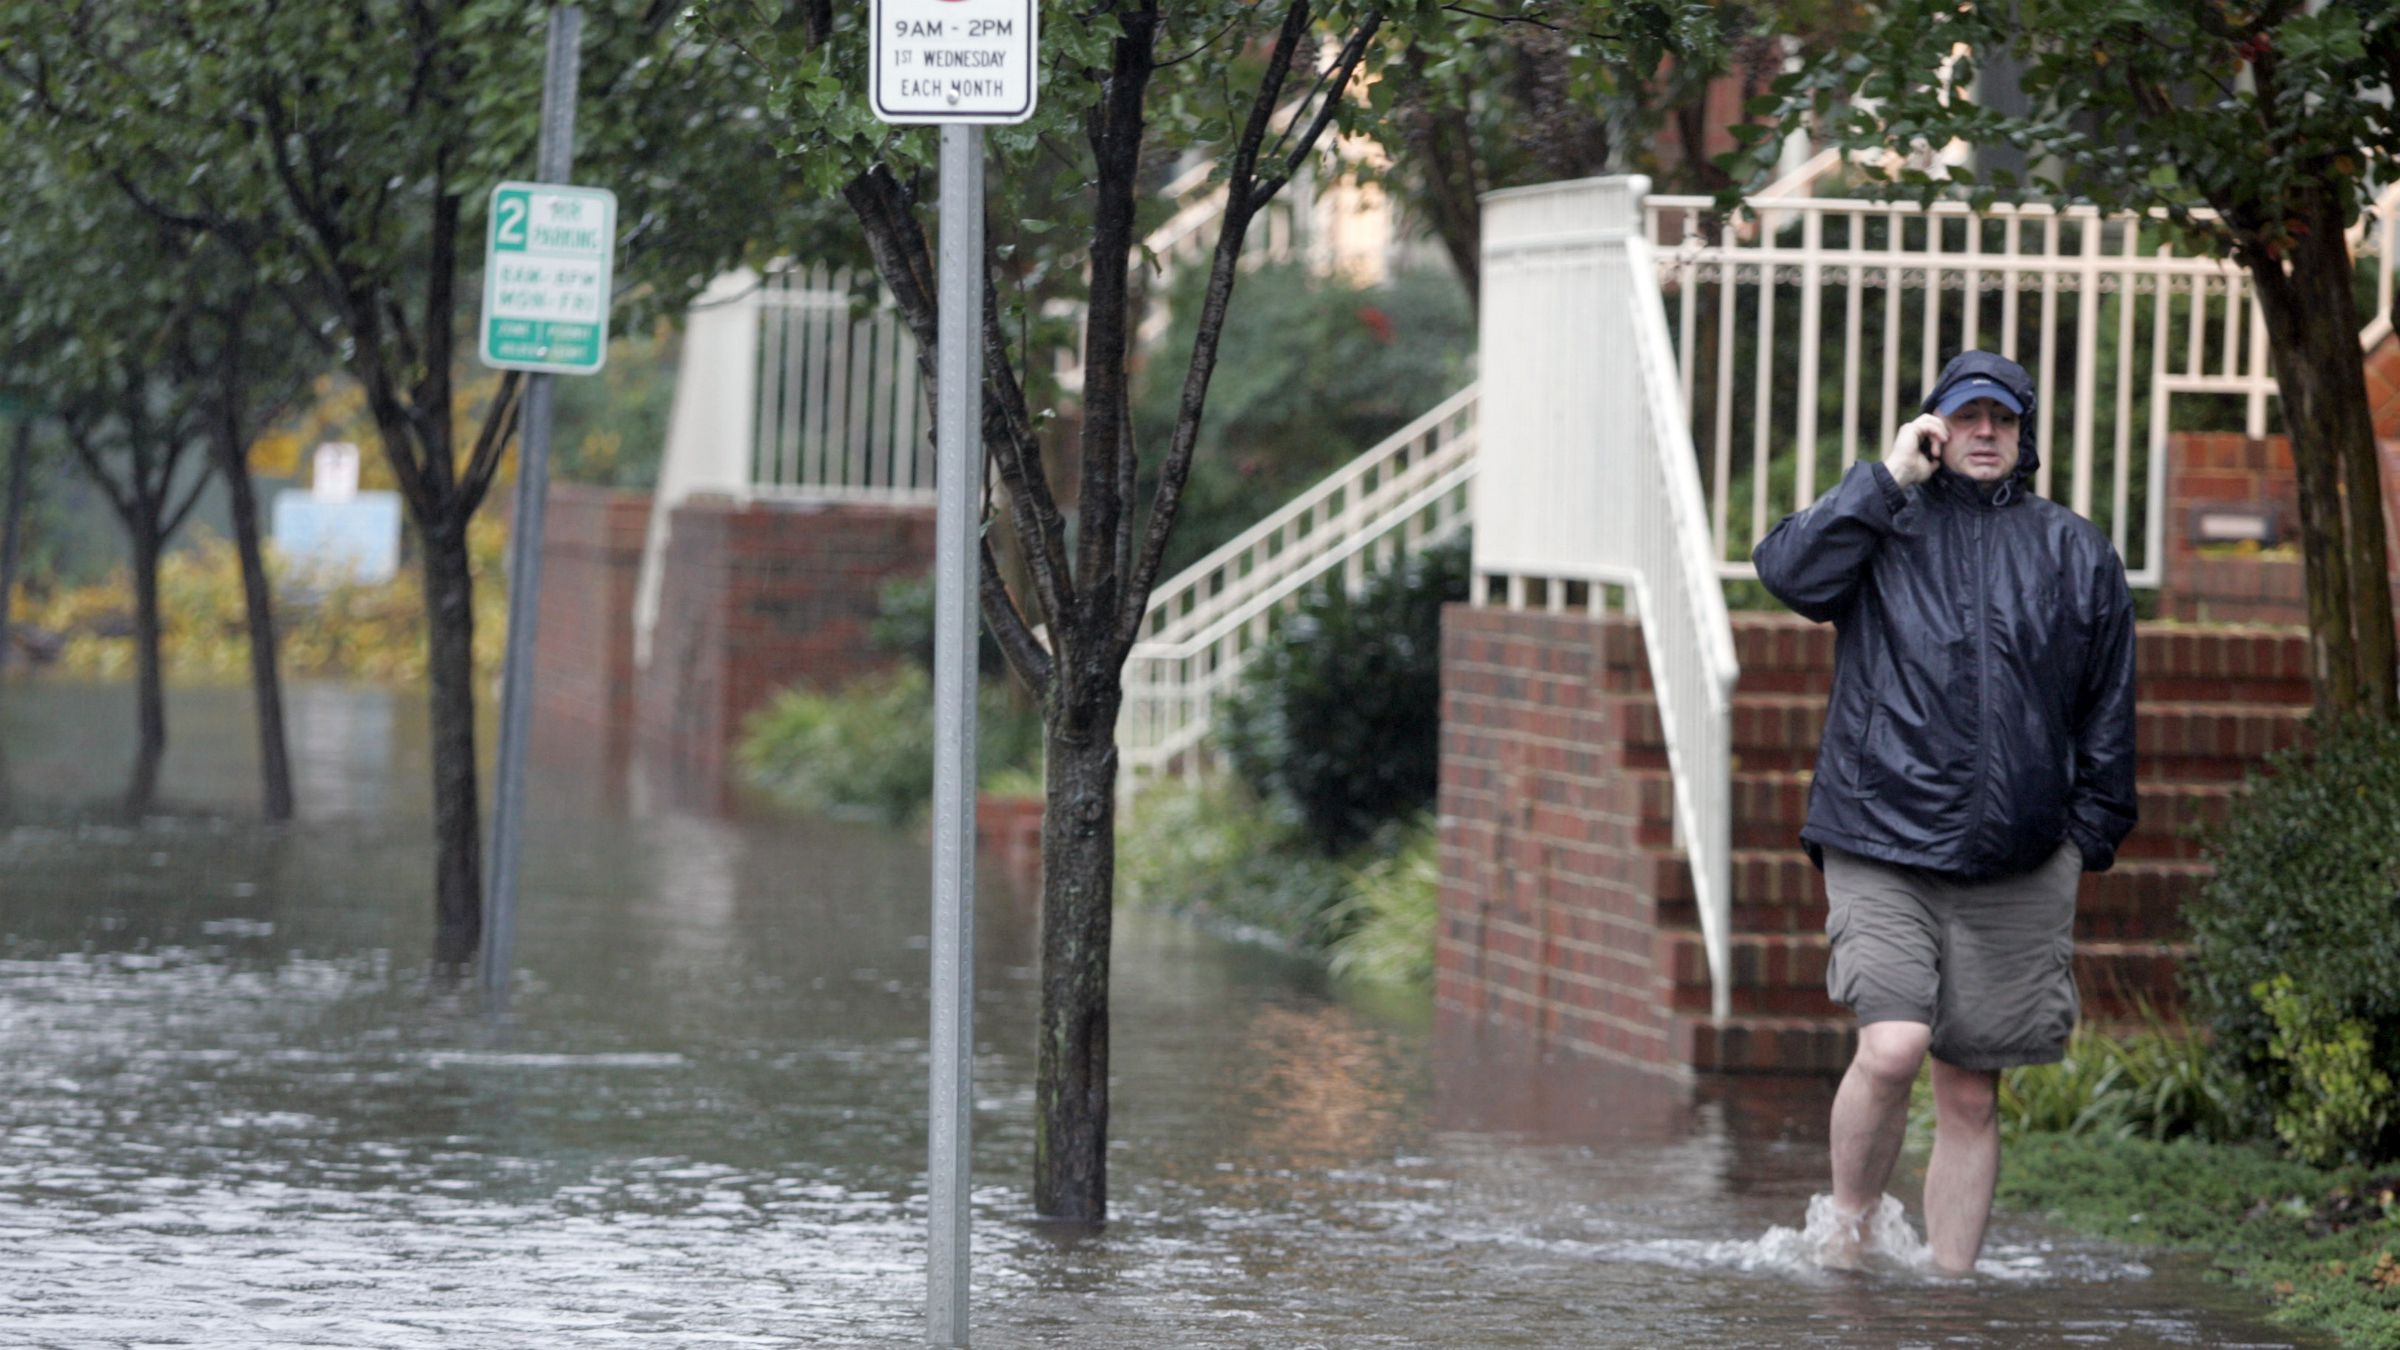 sea level rise storm surge flooding climate change global warming virginia A resident talks on his cell as he walks through a flooded street in Norfolk, Va., Friday, Nov. 13, 2009. The area has been hit by remnants of tropical storm Ida. (AP Photo/Steve Helber